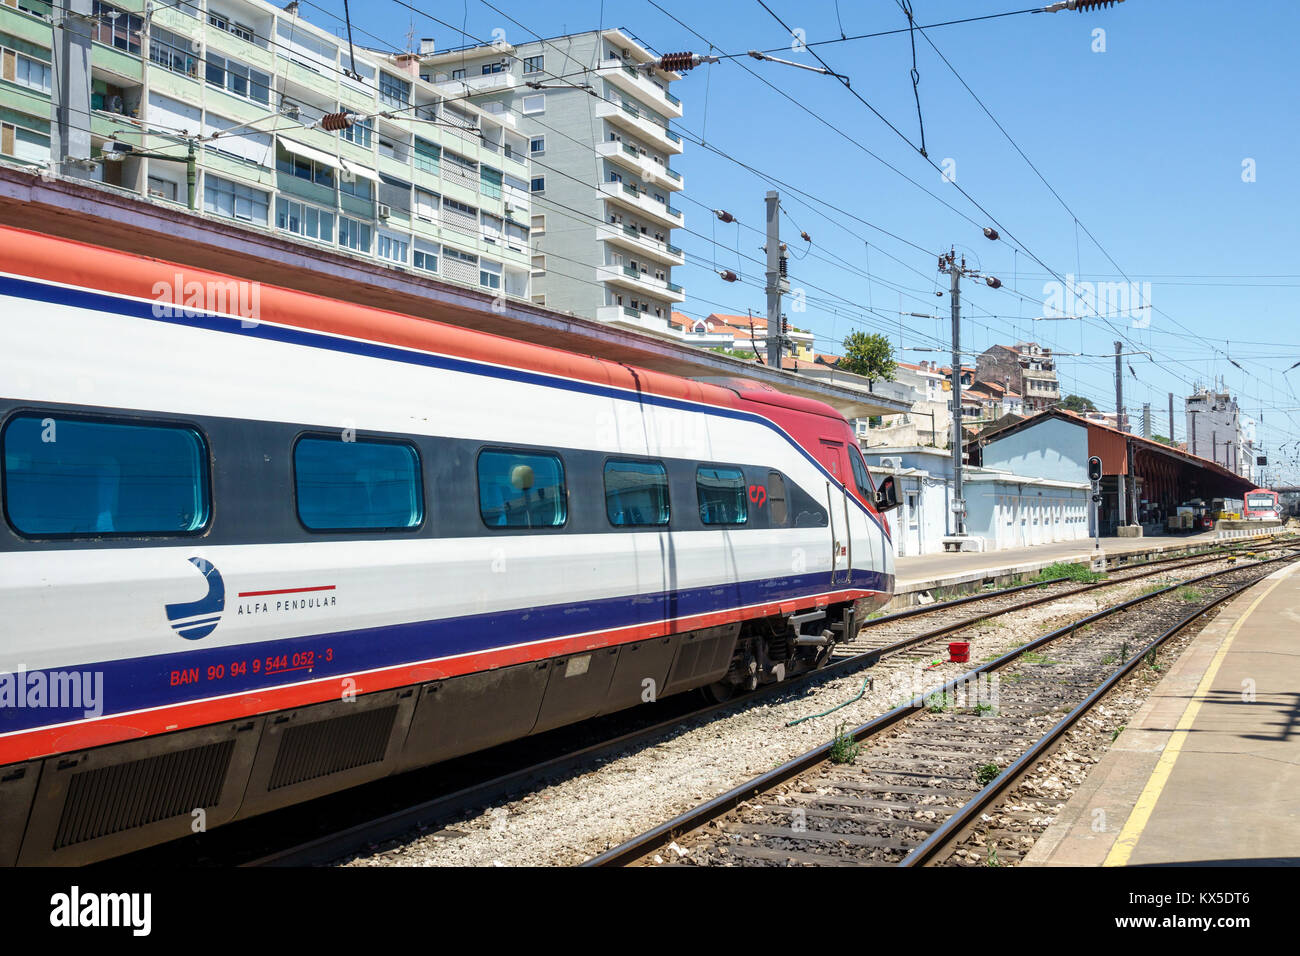 Lisbon Portugal Santa Apolonia Comboios de Portugal railway train track Alfa Pendular Pendolino high-speed tilting - Stock Image